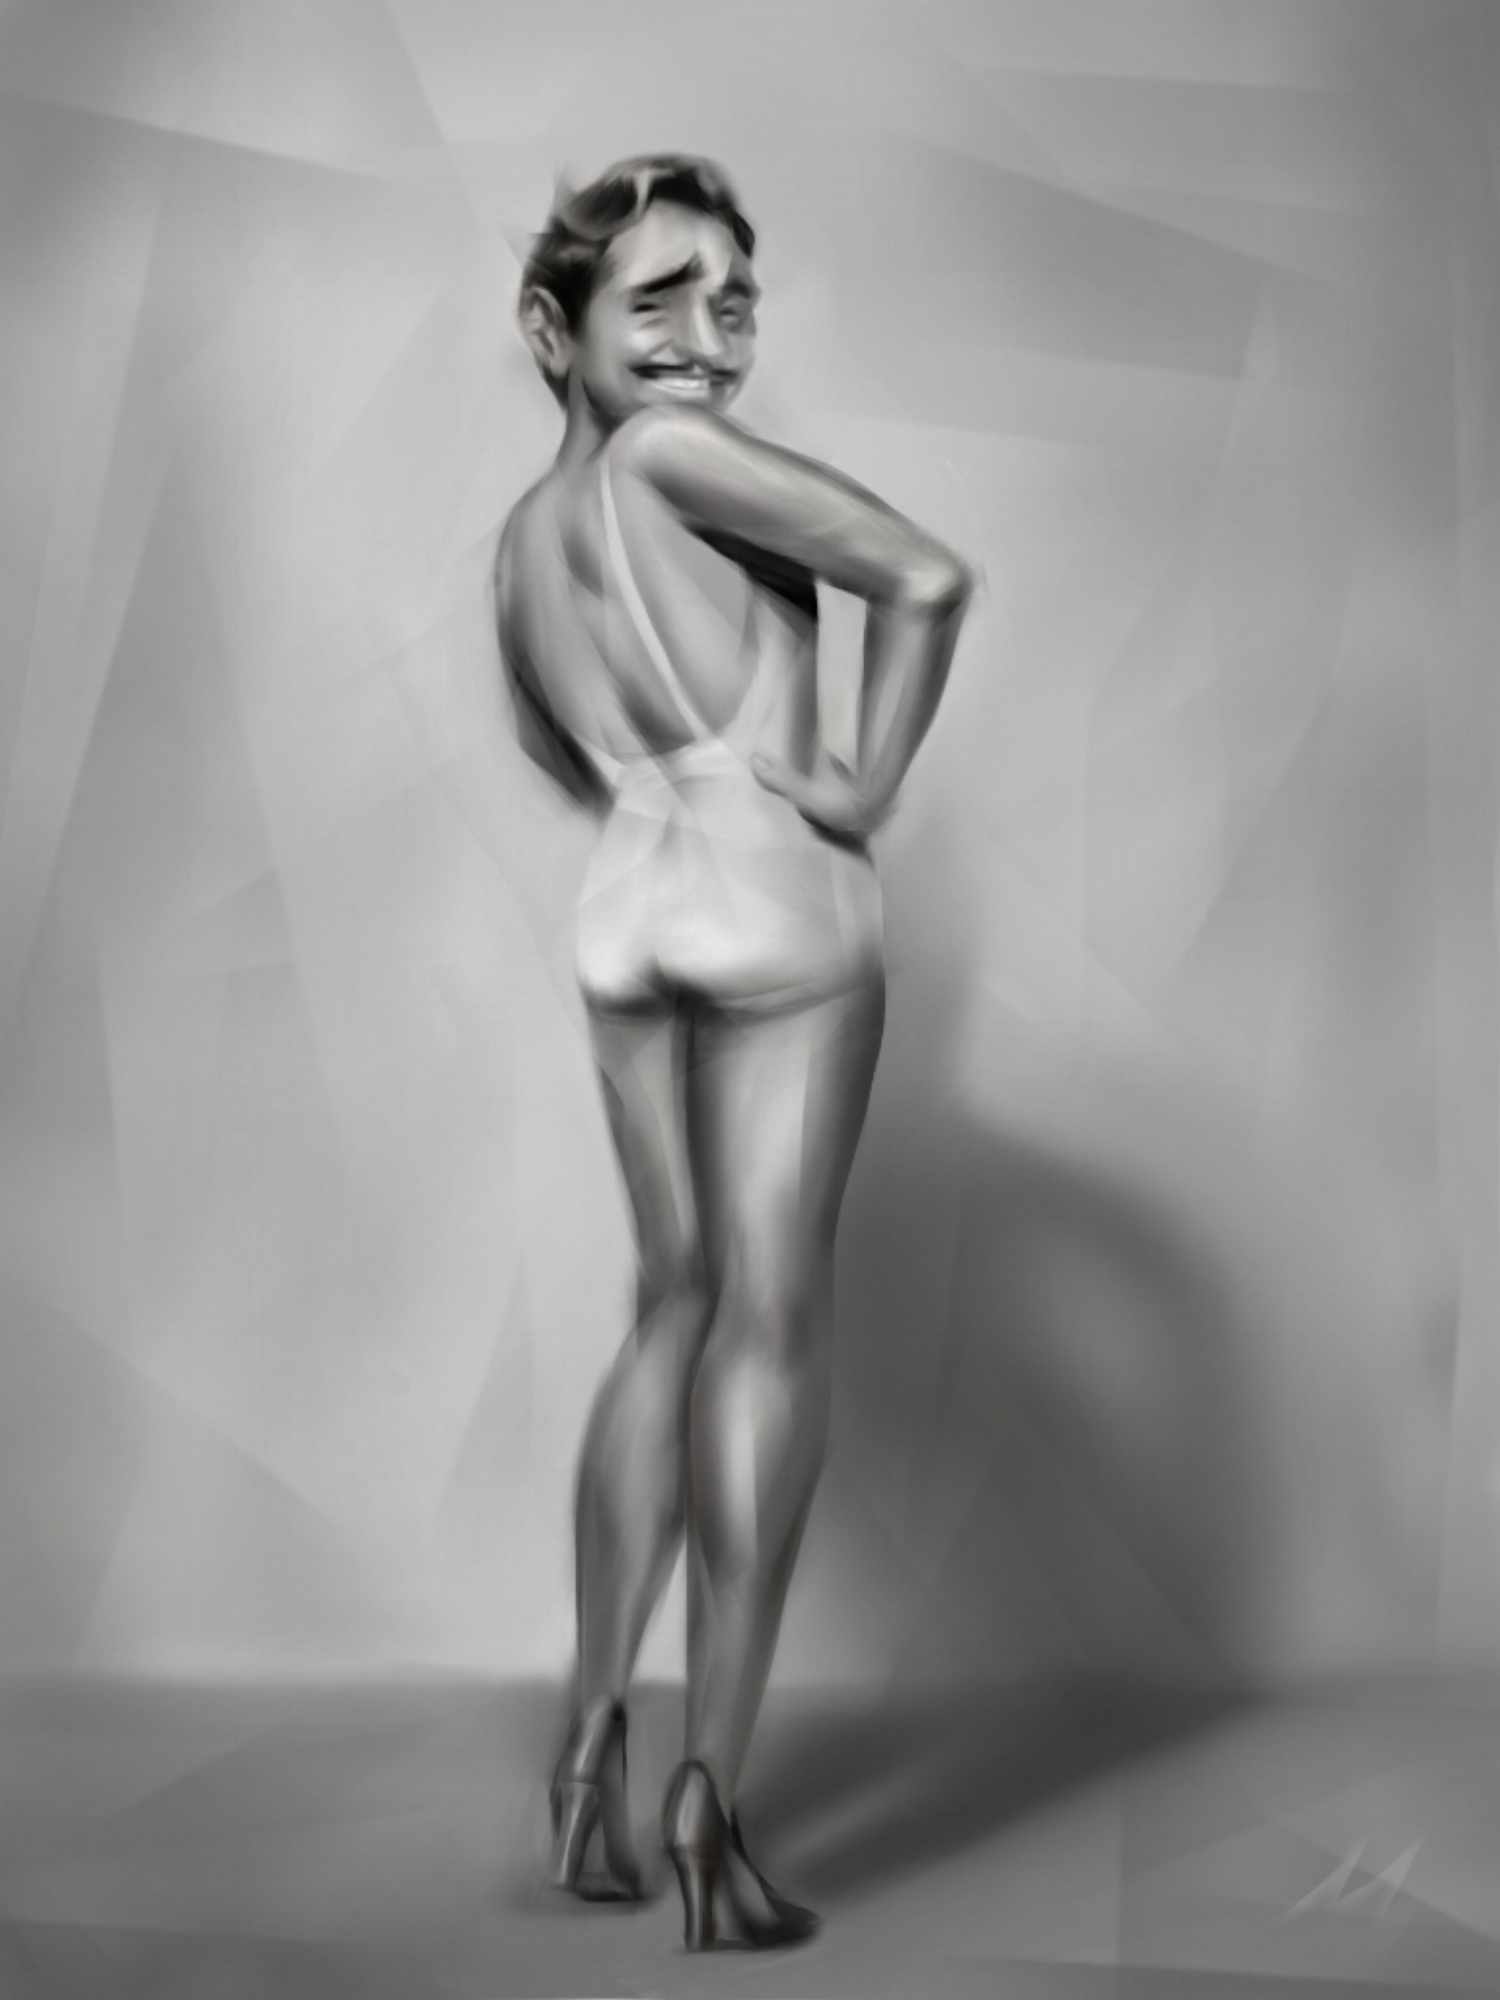 """""""Clark Grable""""  Betty Grable + Clark Gable = Clark Grable. Riffing on the gorgeous WWII cheesecake shot of Betty 'Gams' Grable. #celebritymashup"""